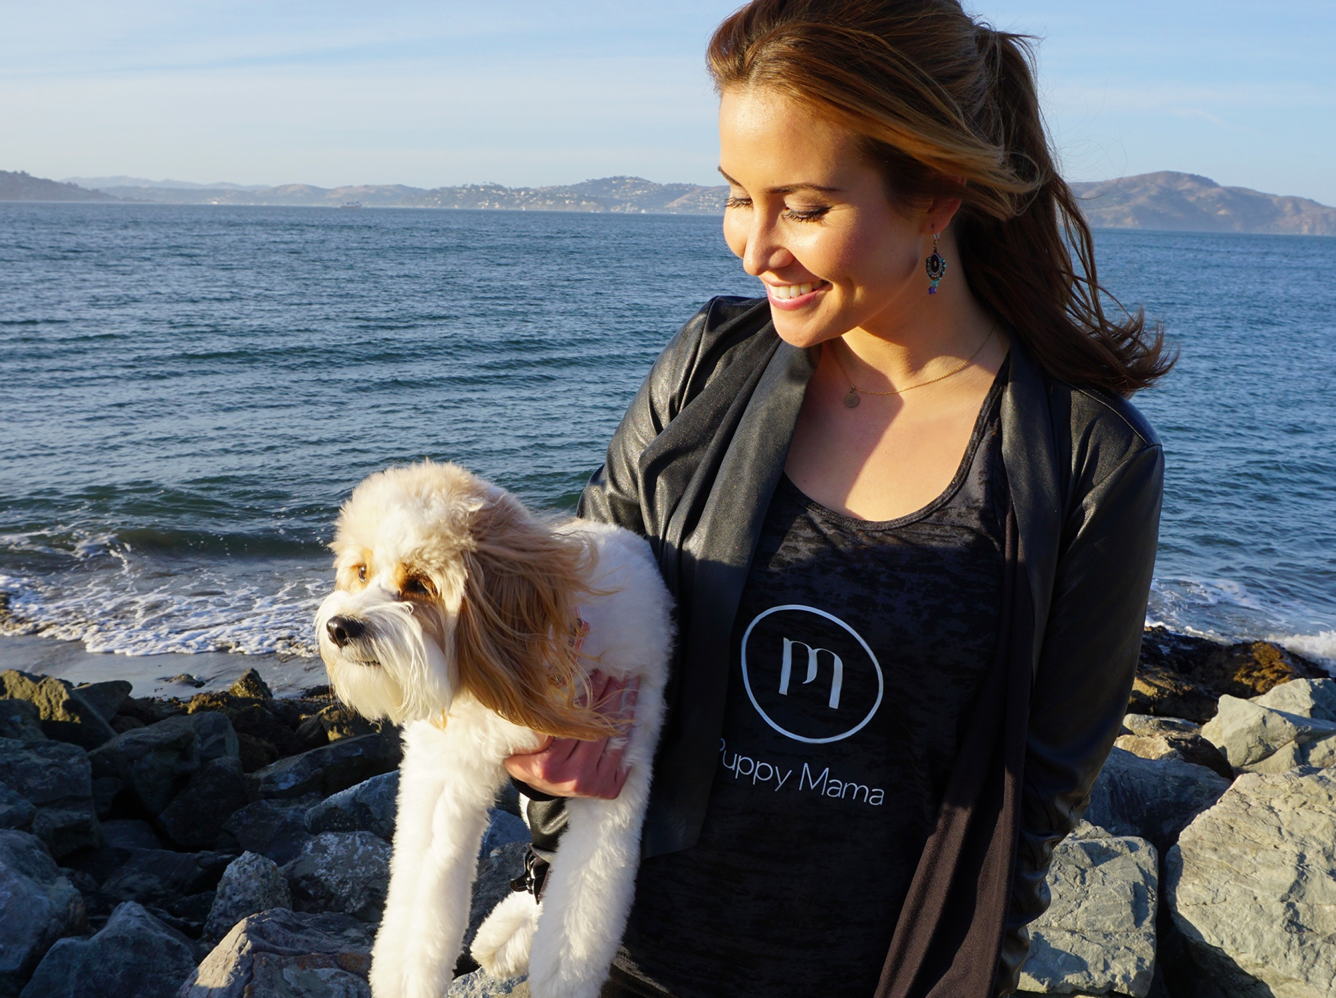 Puppy Mama Black Tank Top - As Seen in VOGUE & GQ Magazines!